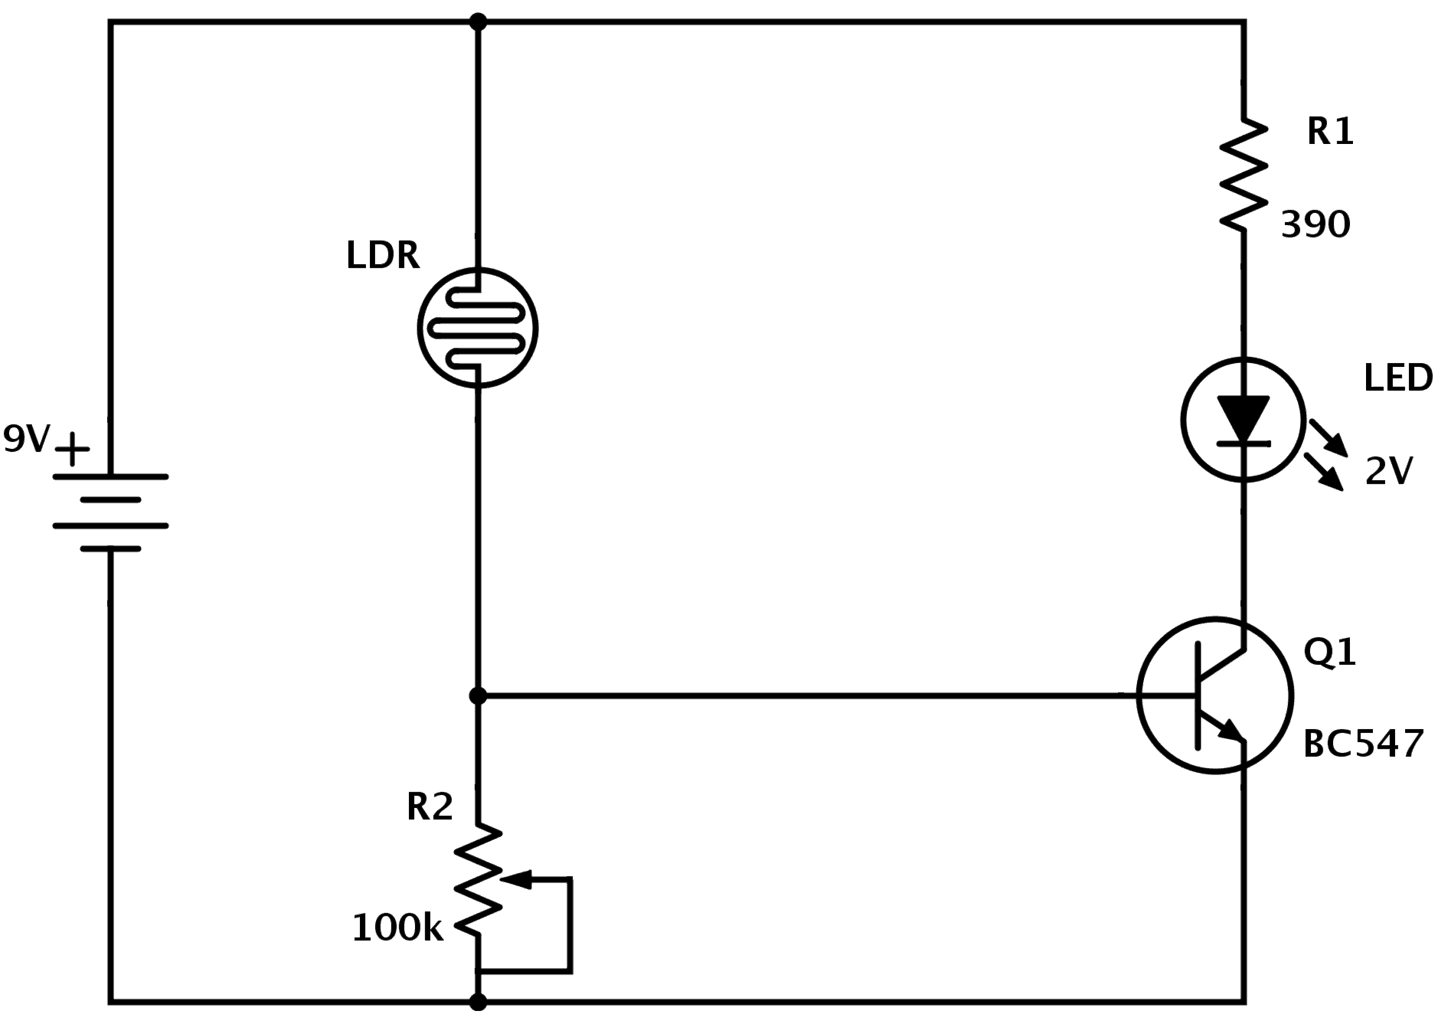 circuit diagram how to read and understand any schematic rh build electronic circuits com electronic circuit schematic drawing tool electronic circuit schematic archive